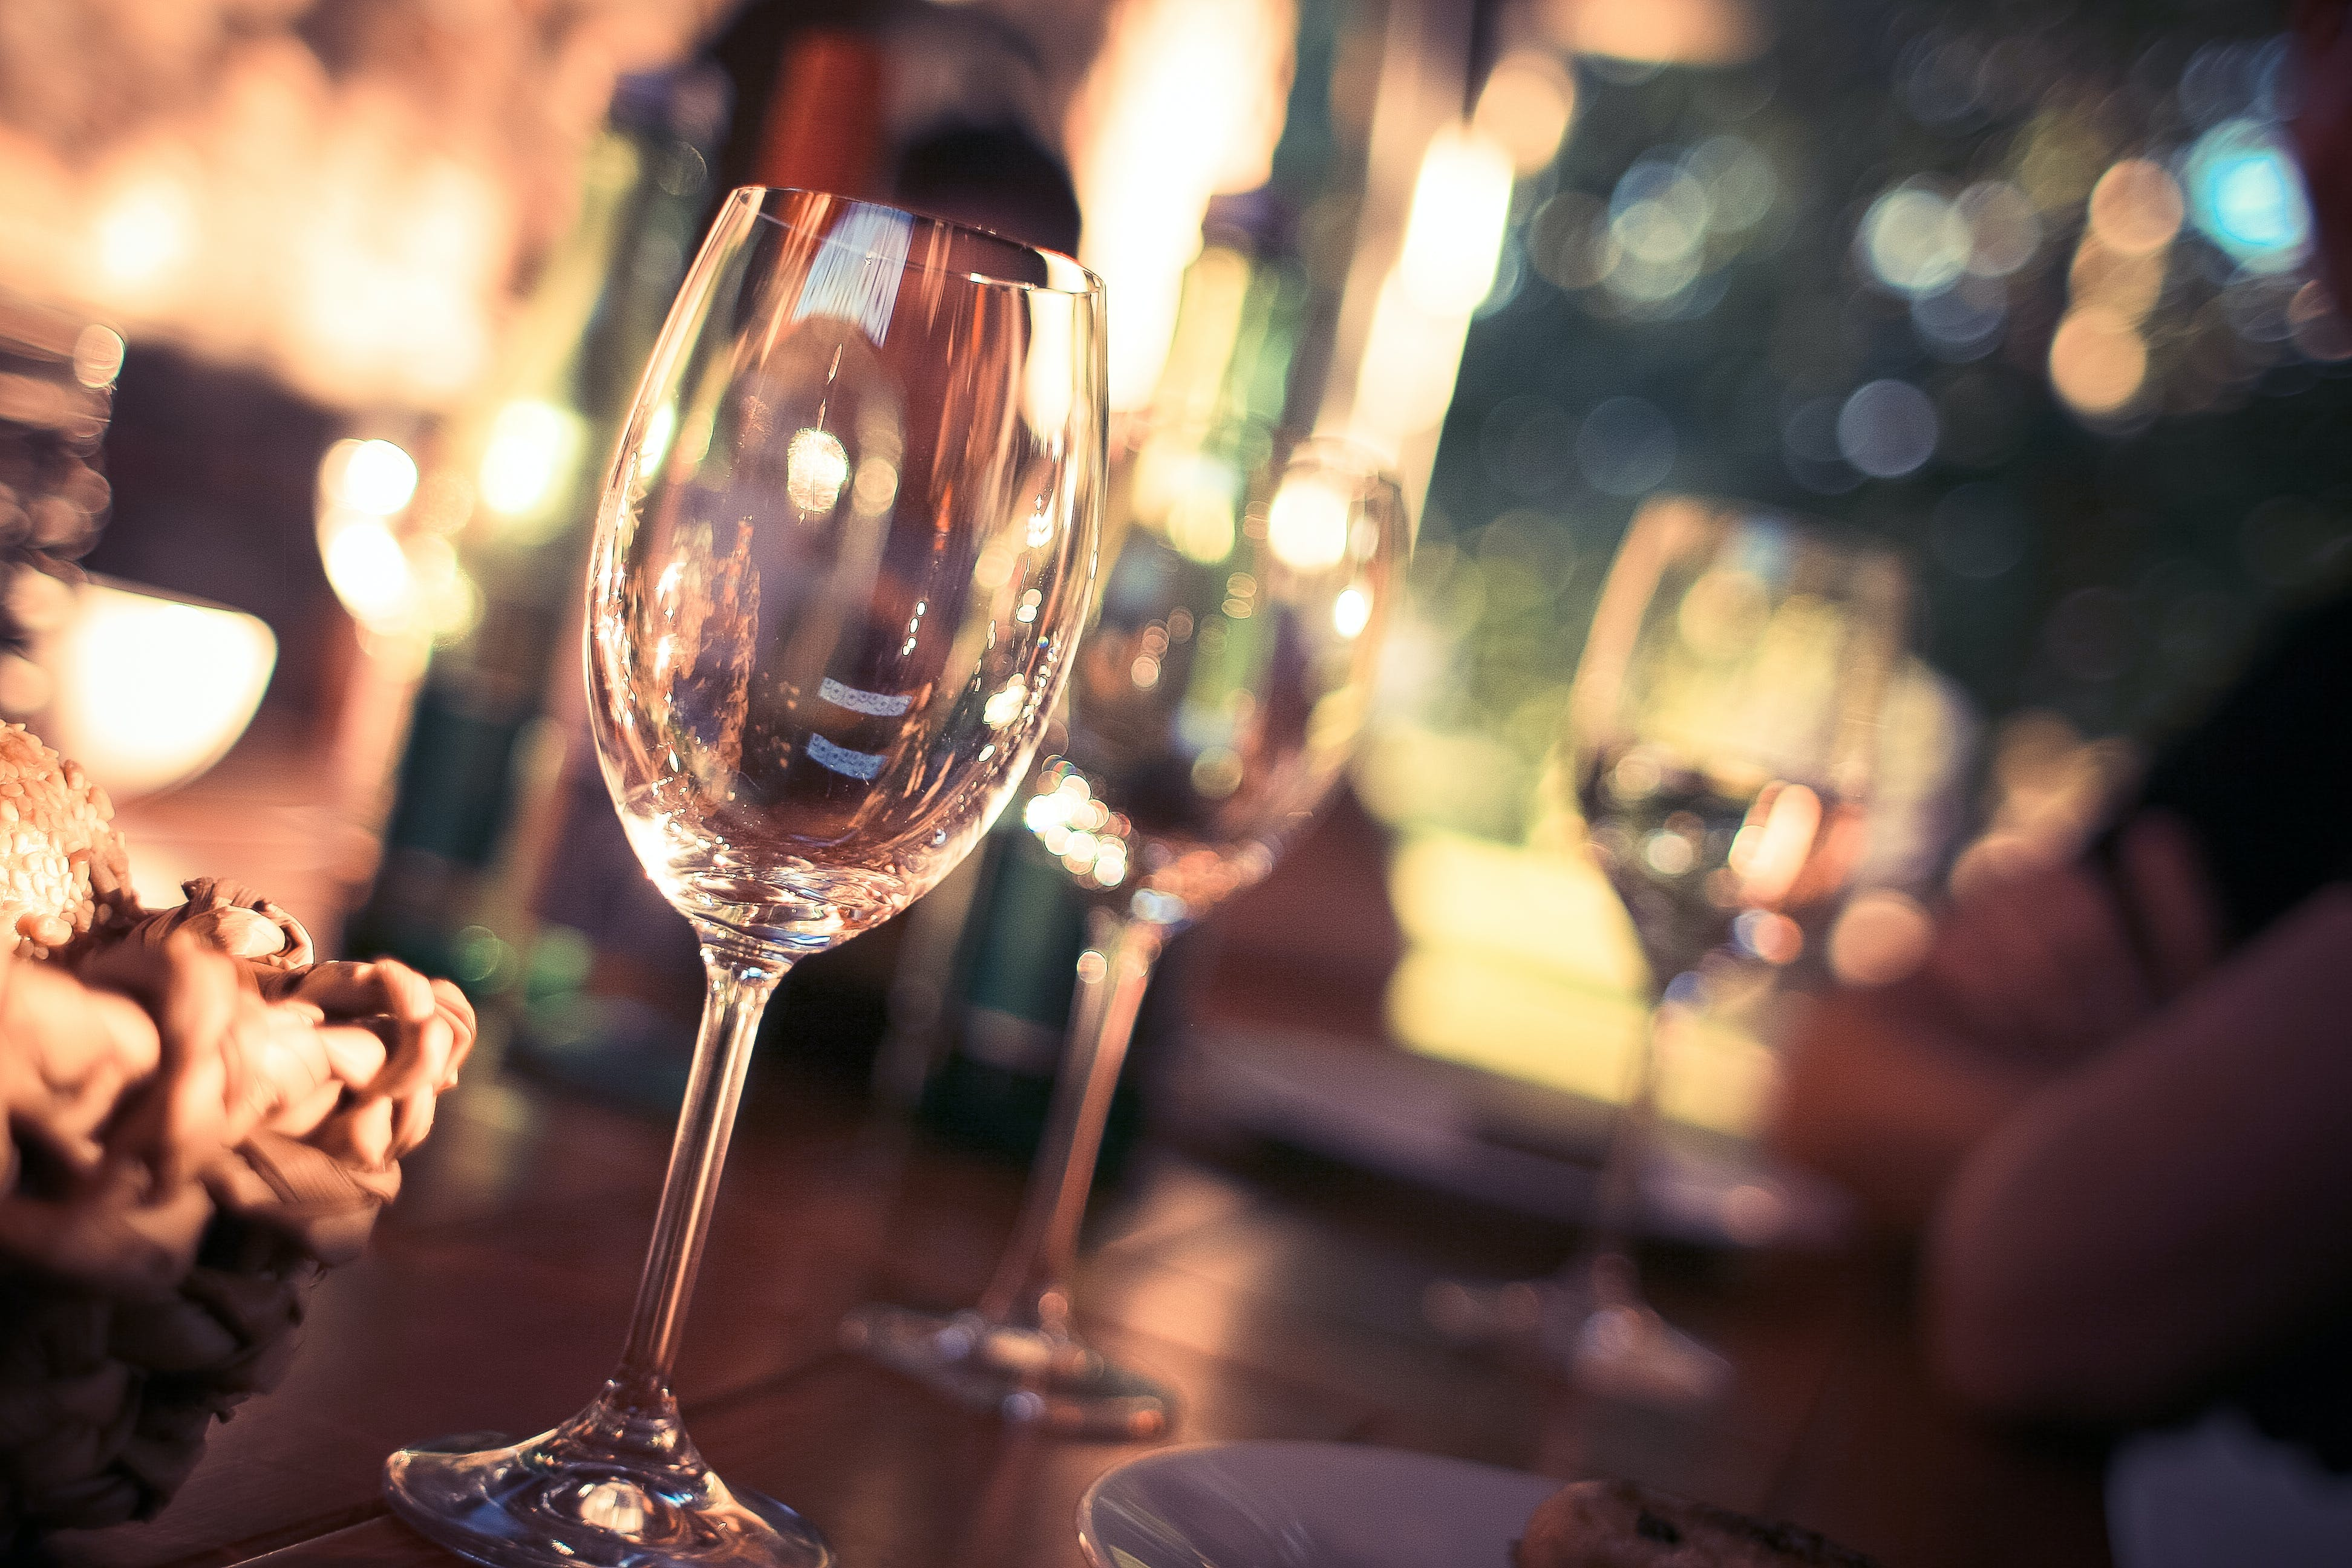 Wine Glass on Restaurant Table